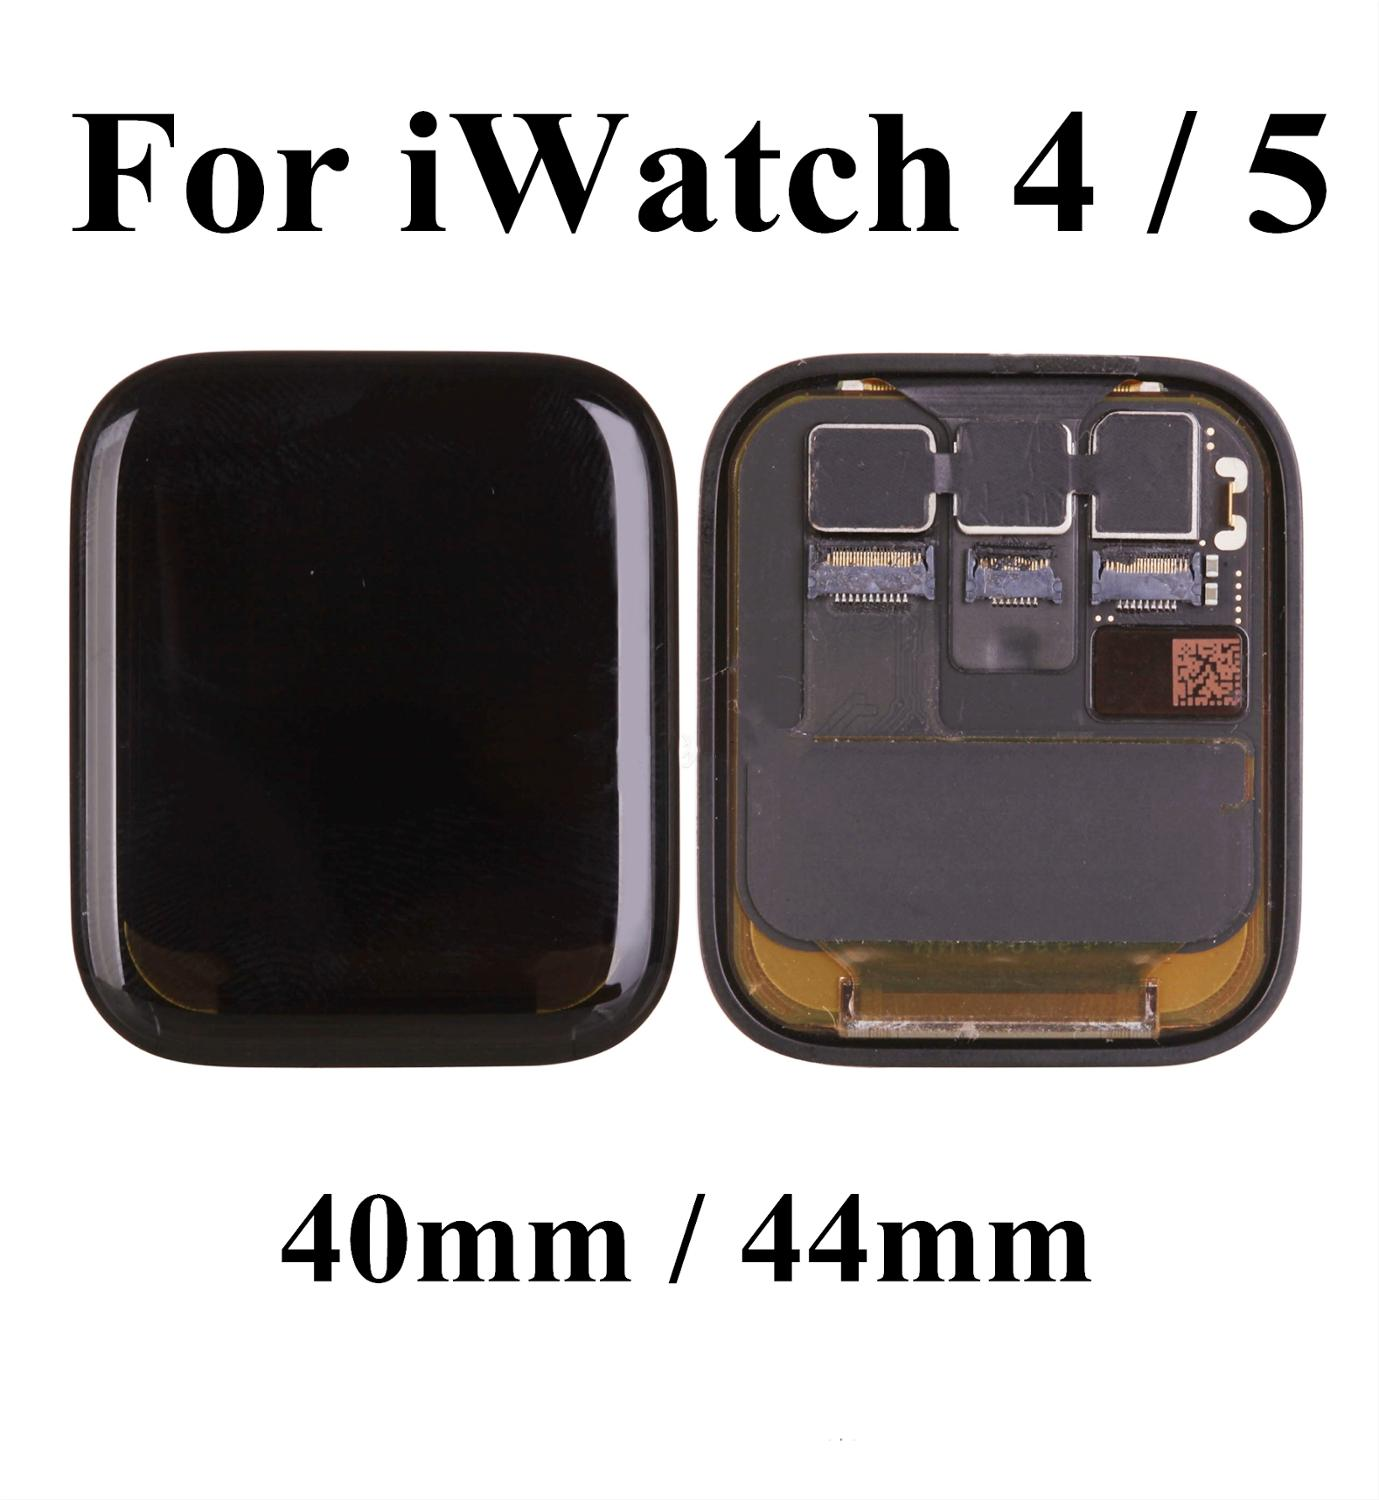 Original For Apple Watch 4 Watch 5 Series 4 5 LCD Original Display Digitizer Assembly For iwatch 5 Series5 S4 S5 40mm 44mm LCD image